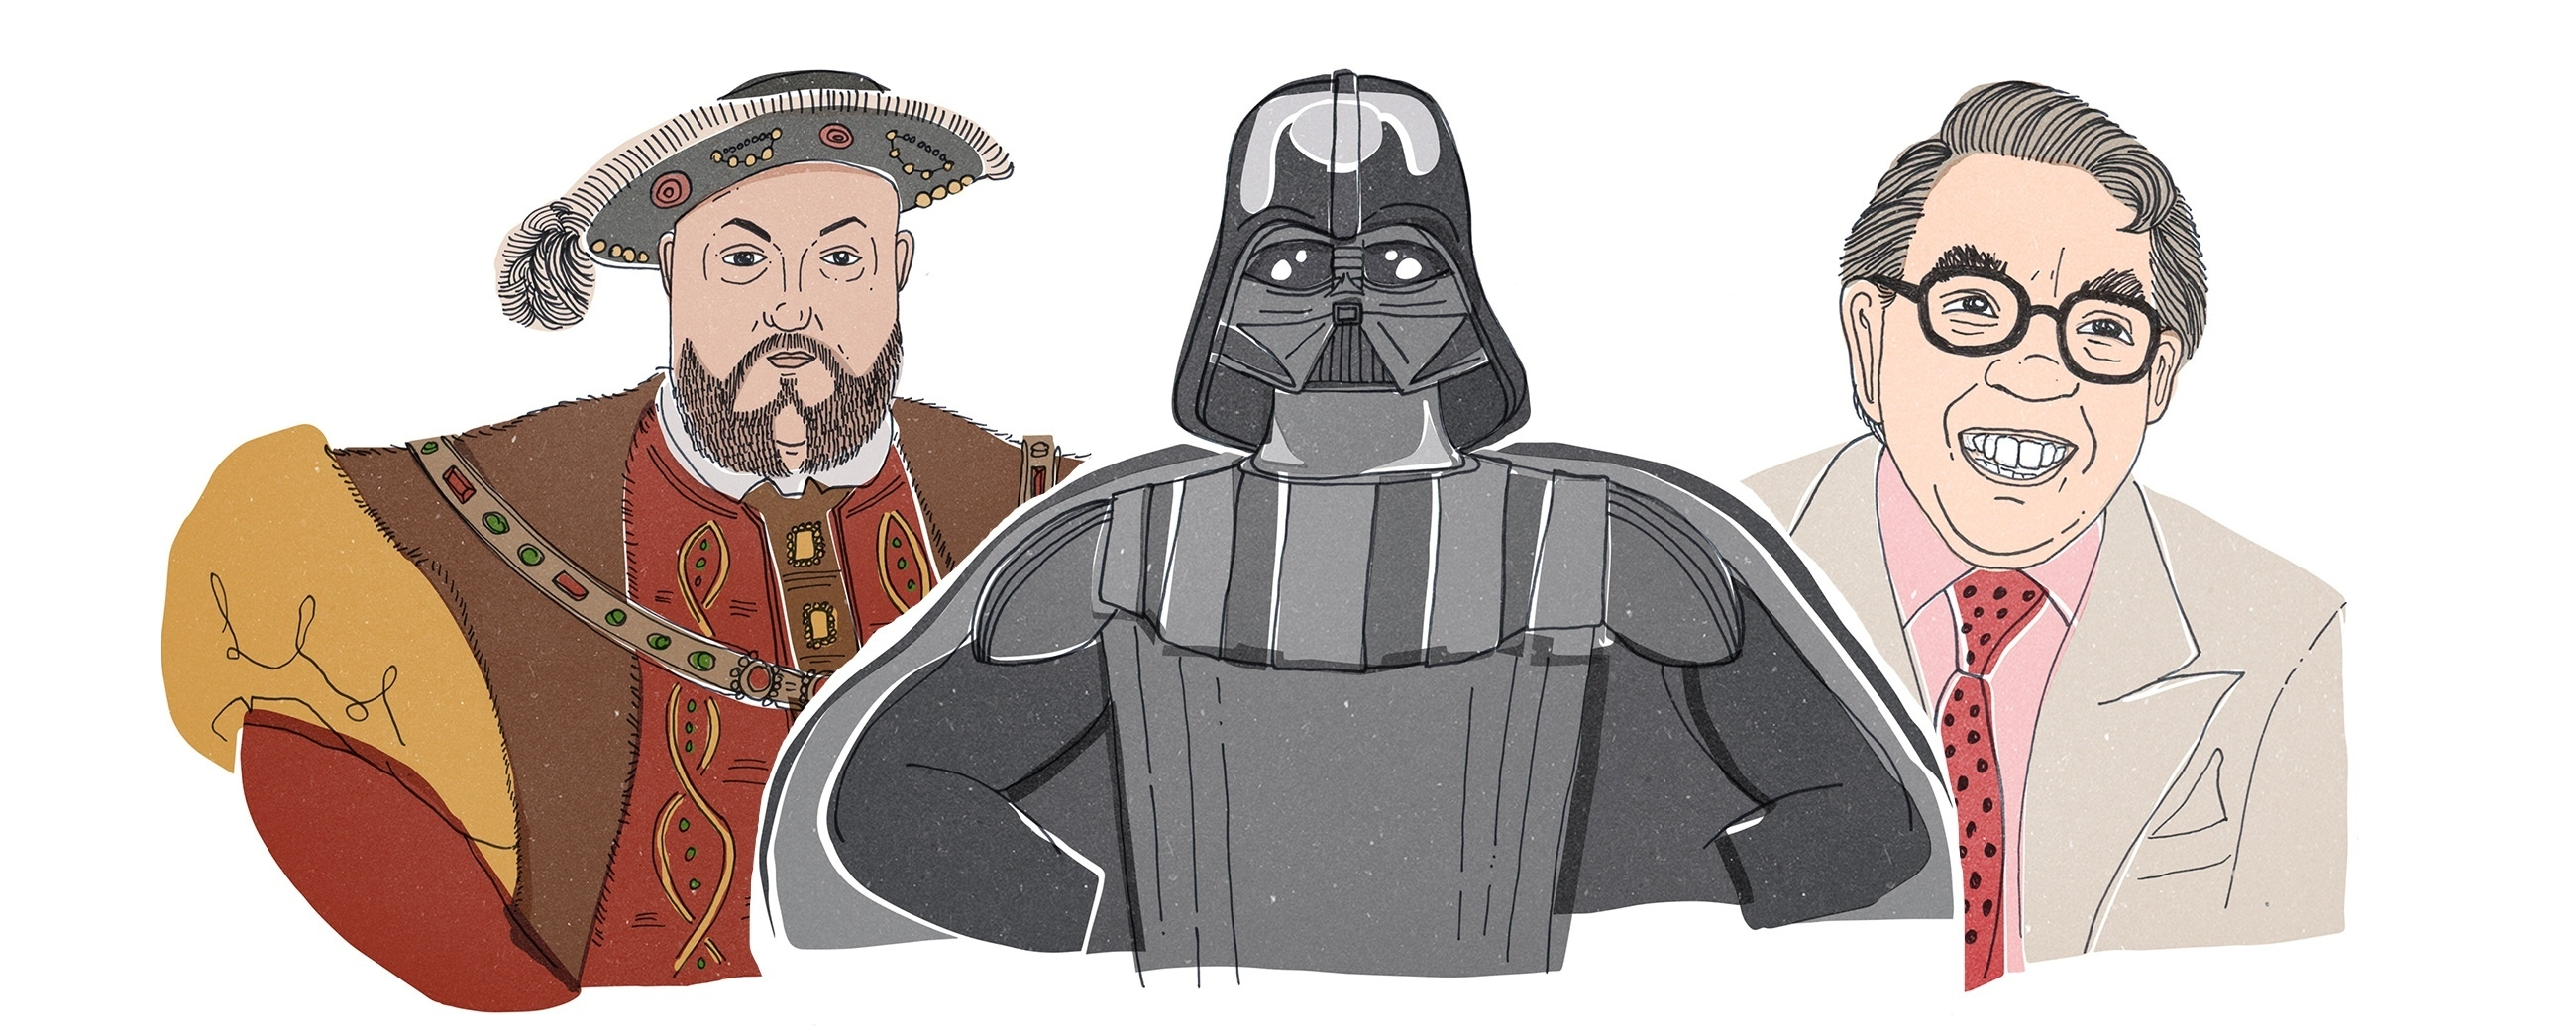 Illustrations of Henry VIII, Darth Vader and Ronnie Corbit